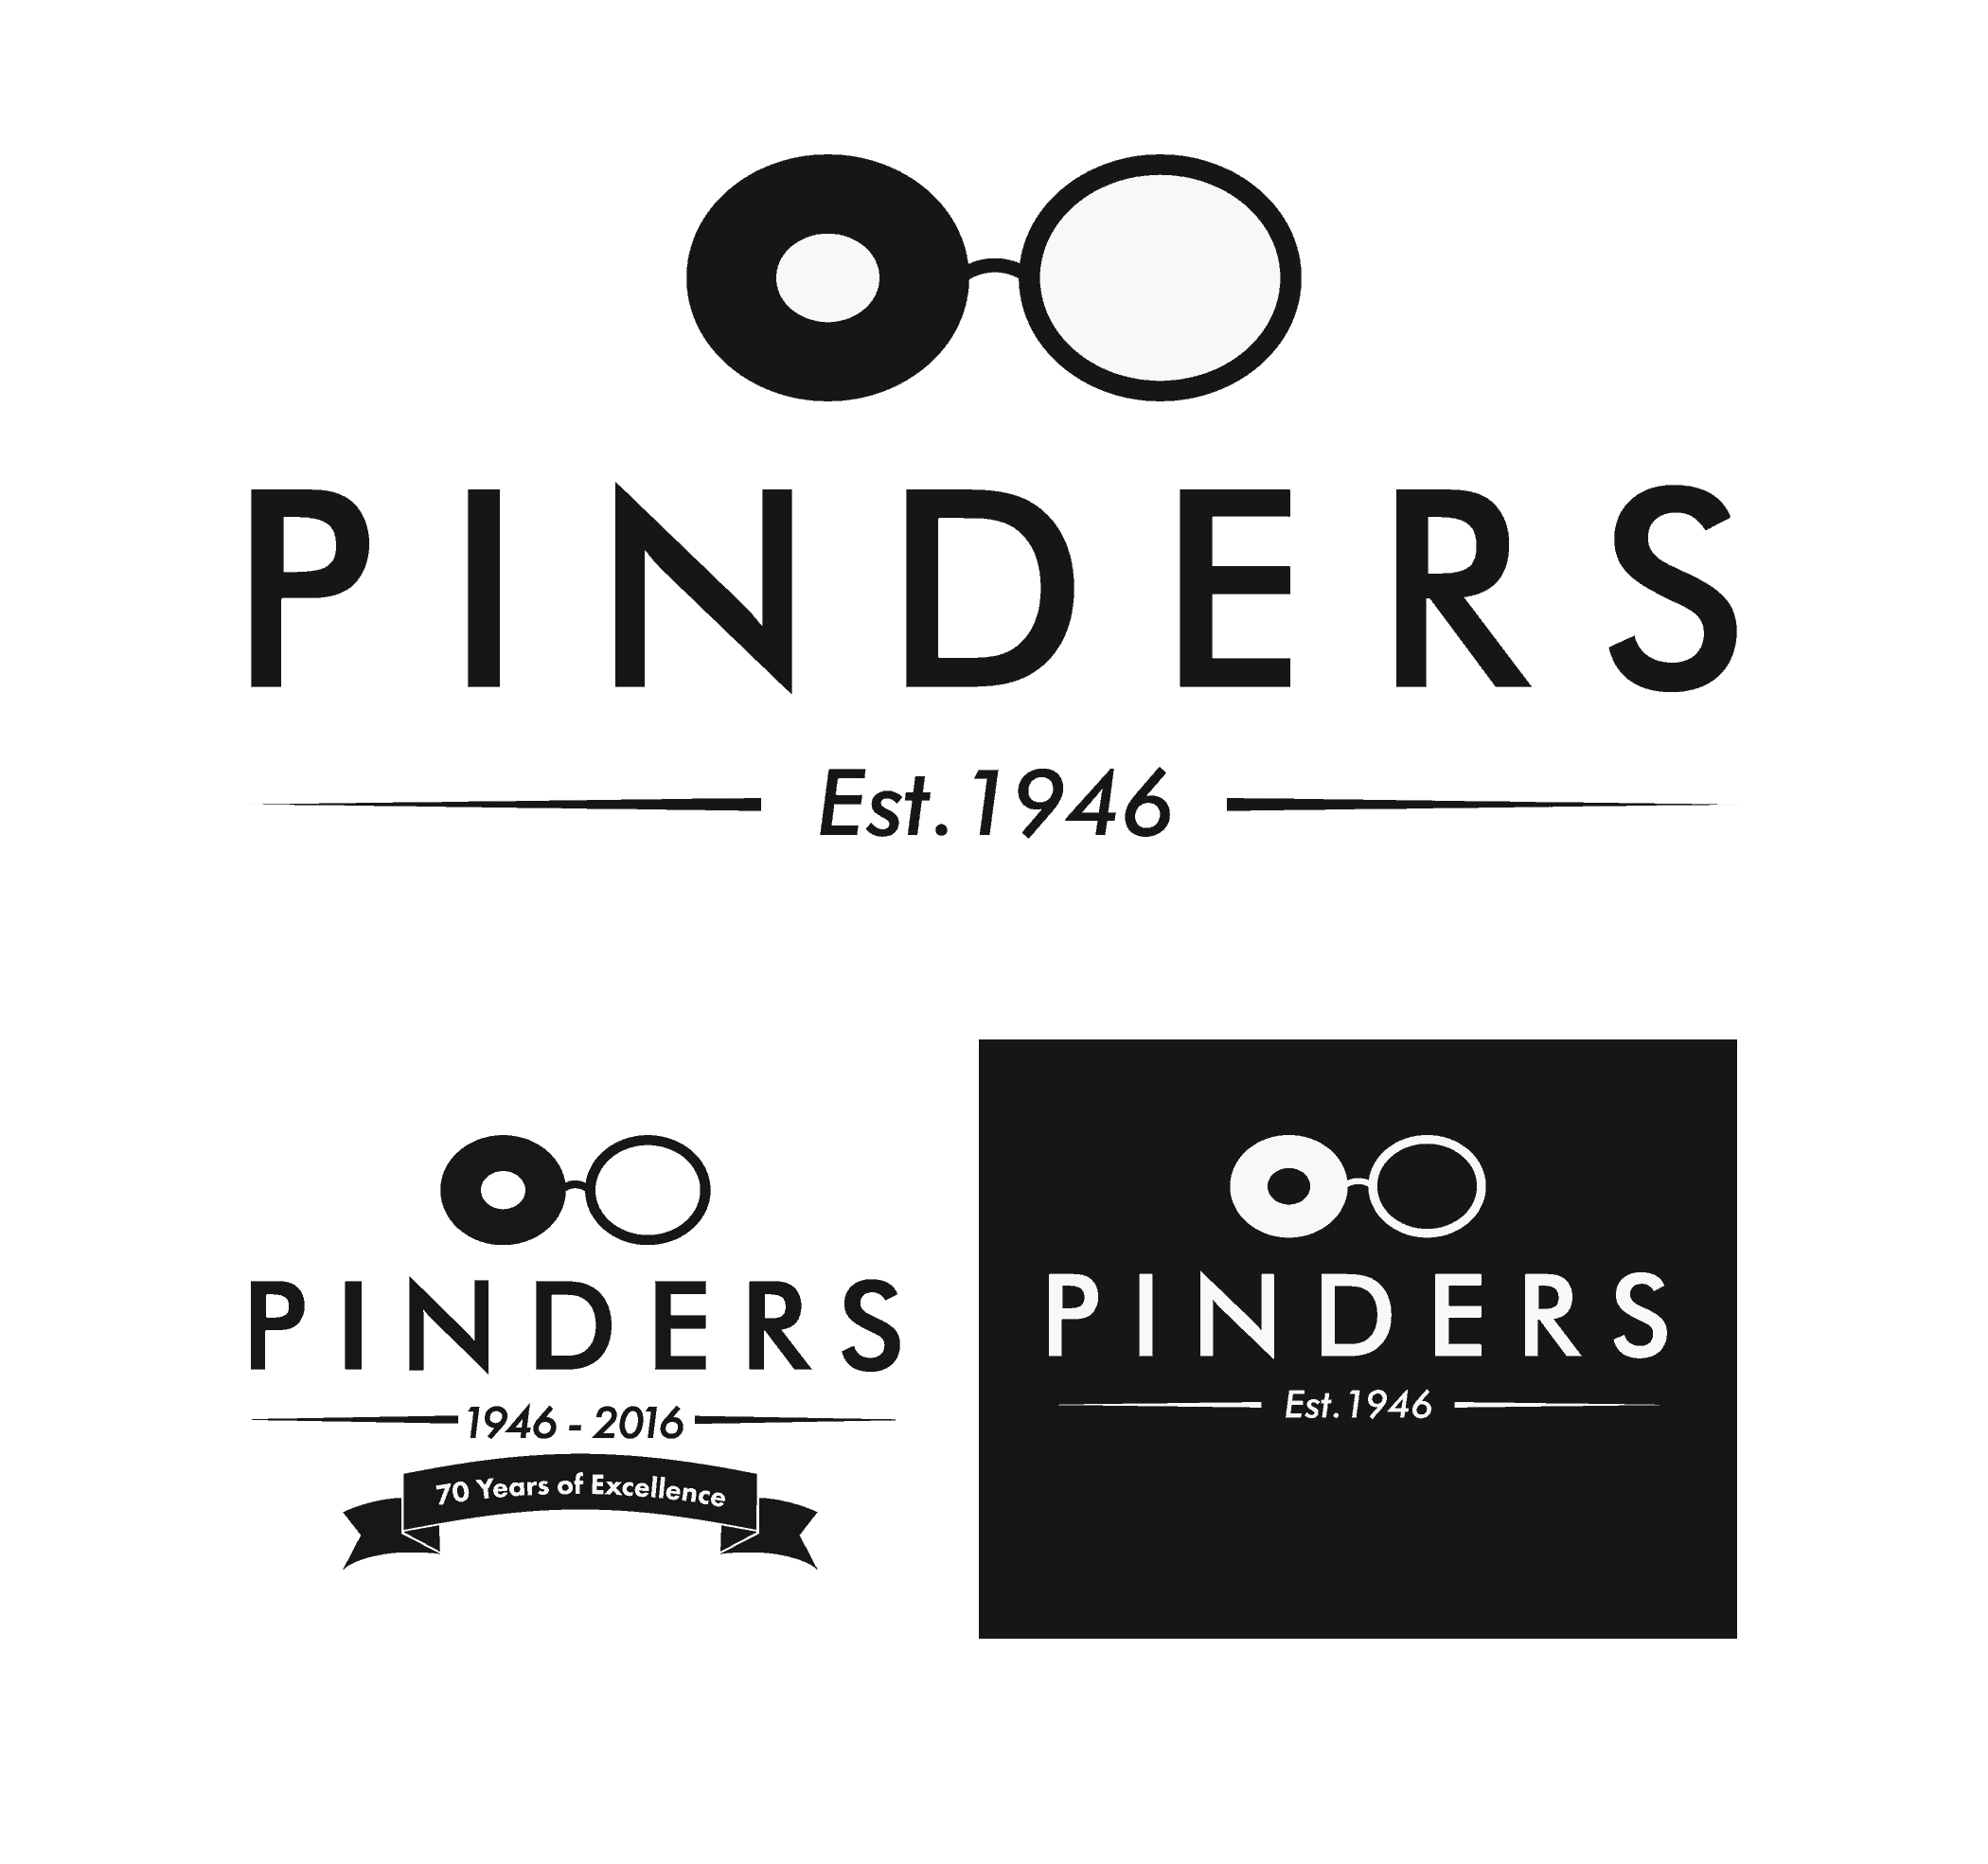 Pinders logo and branding